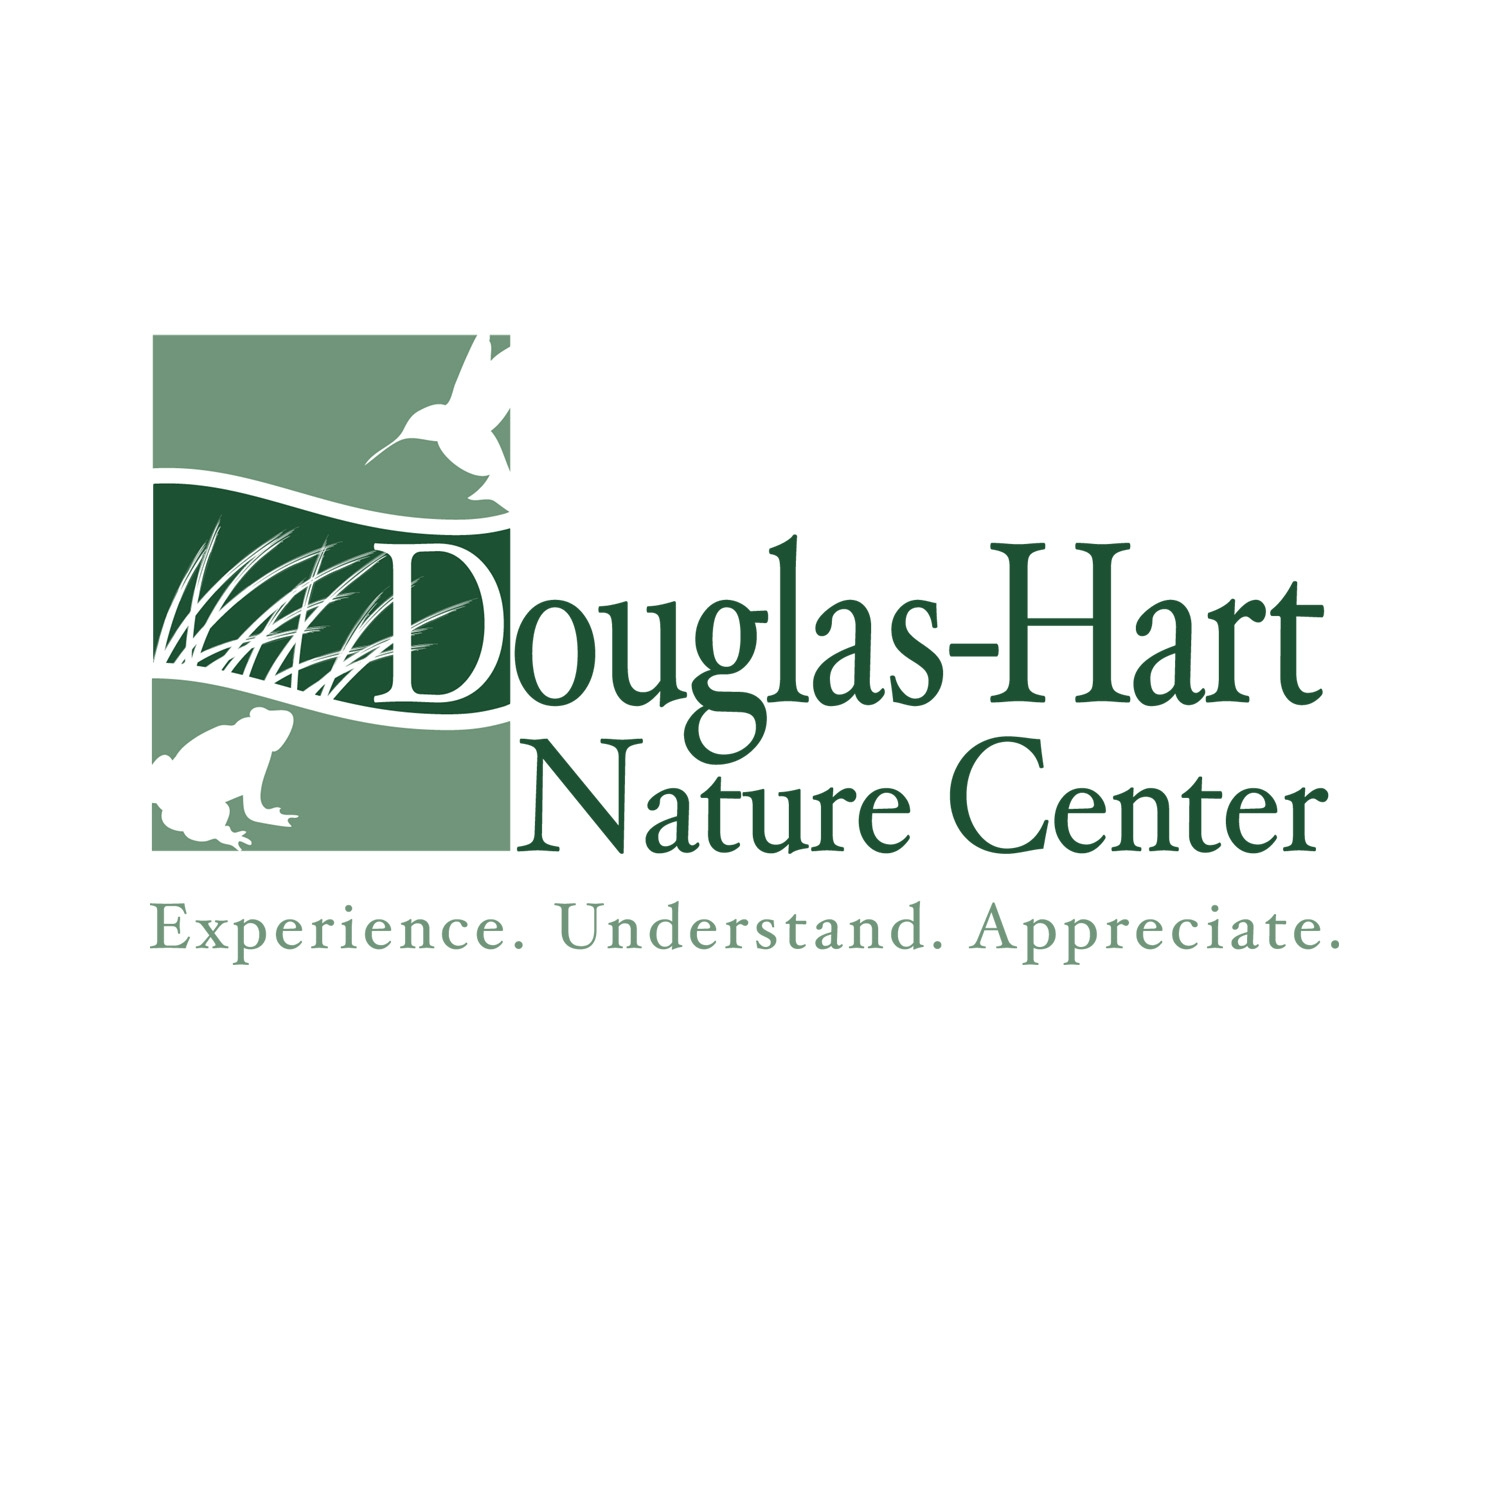 Internships Available at Douglas-Hart Nature Center